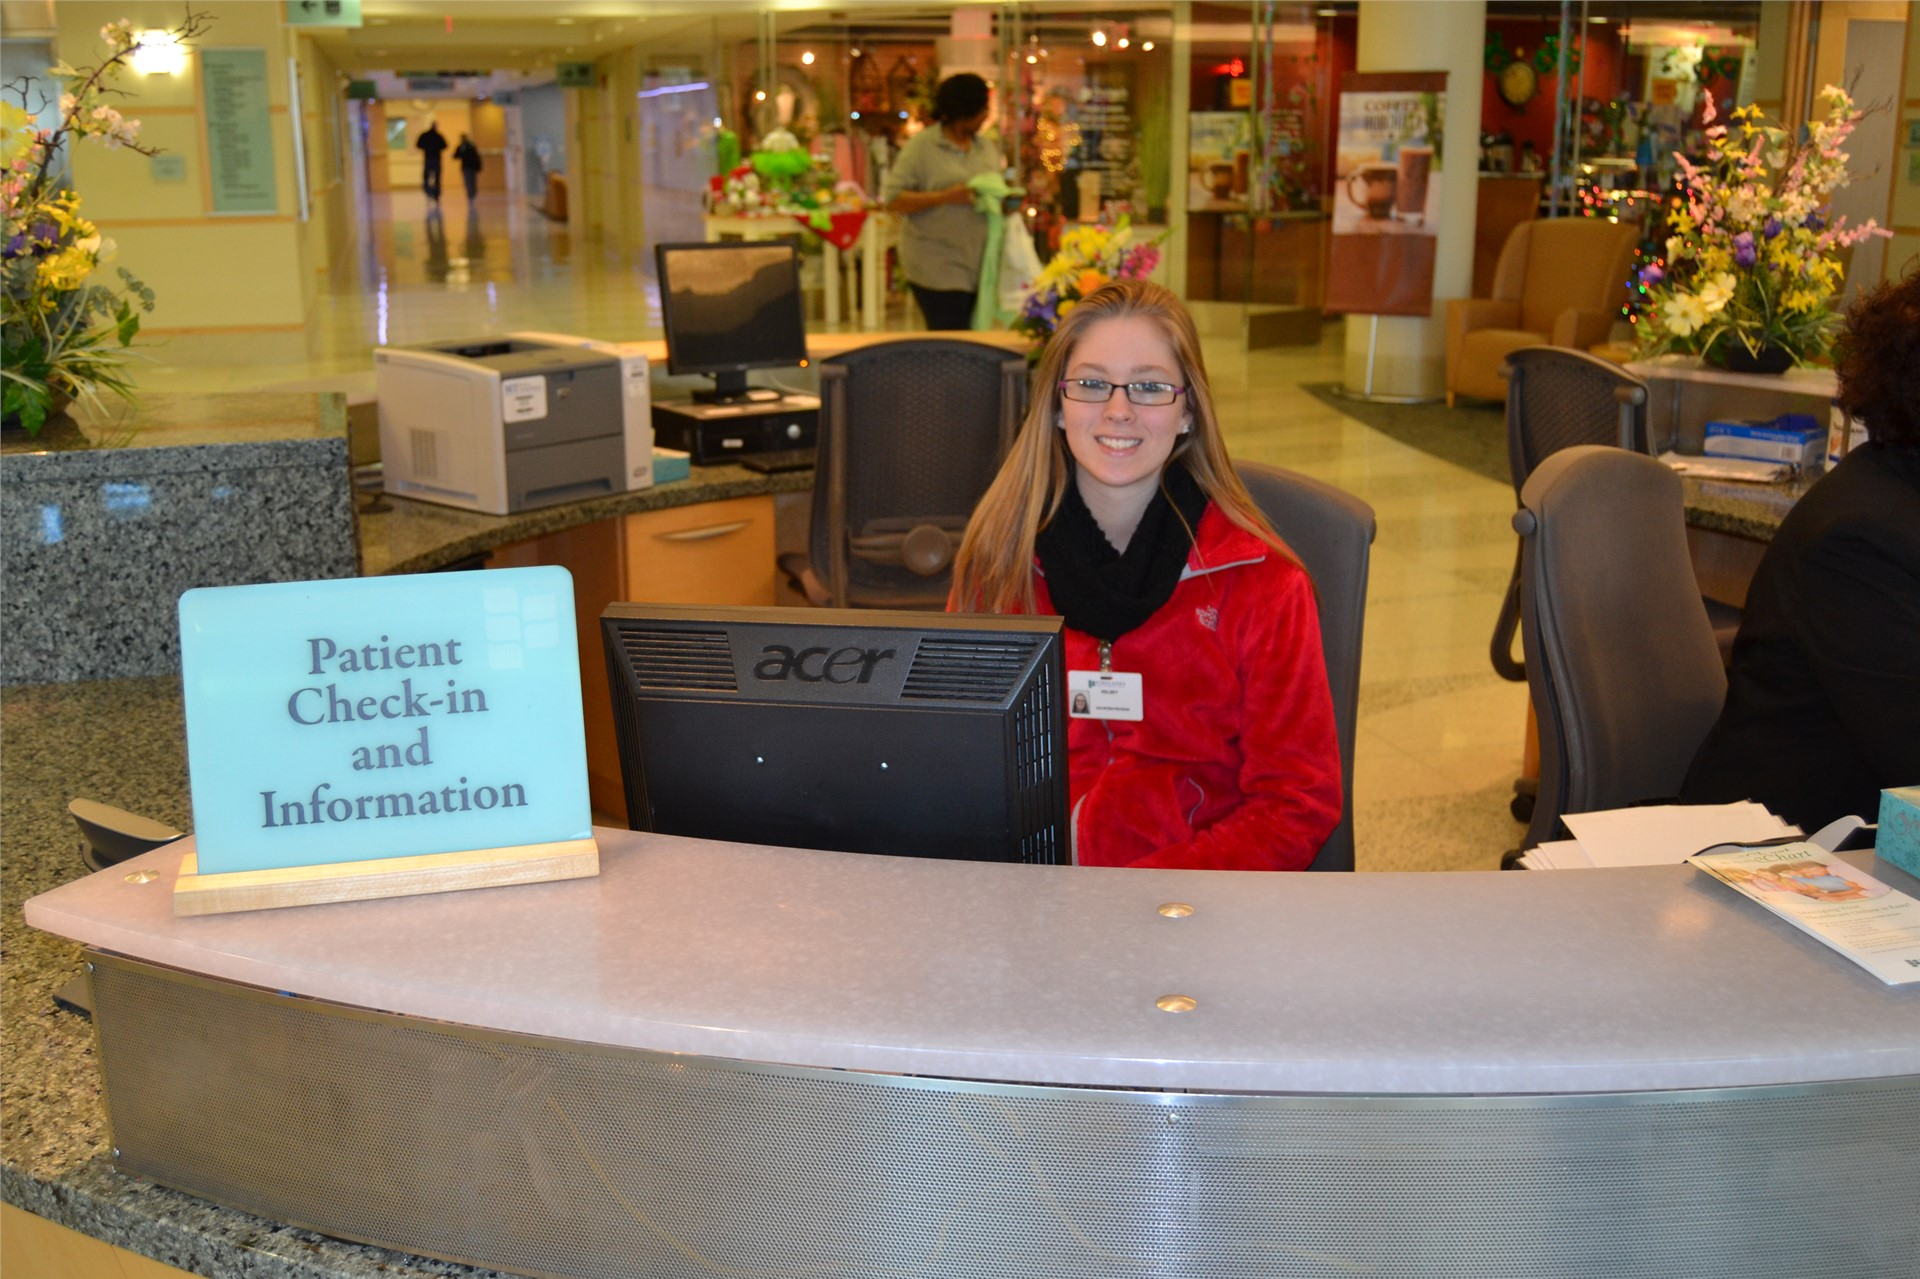 Student Interns as a Receptionist at Firelands Regional Medical Center